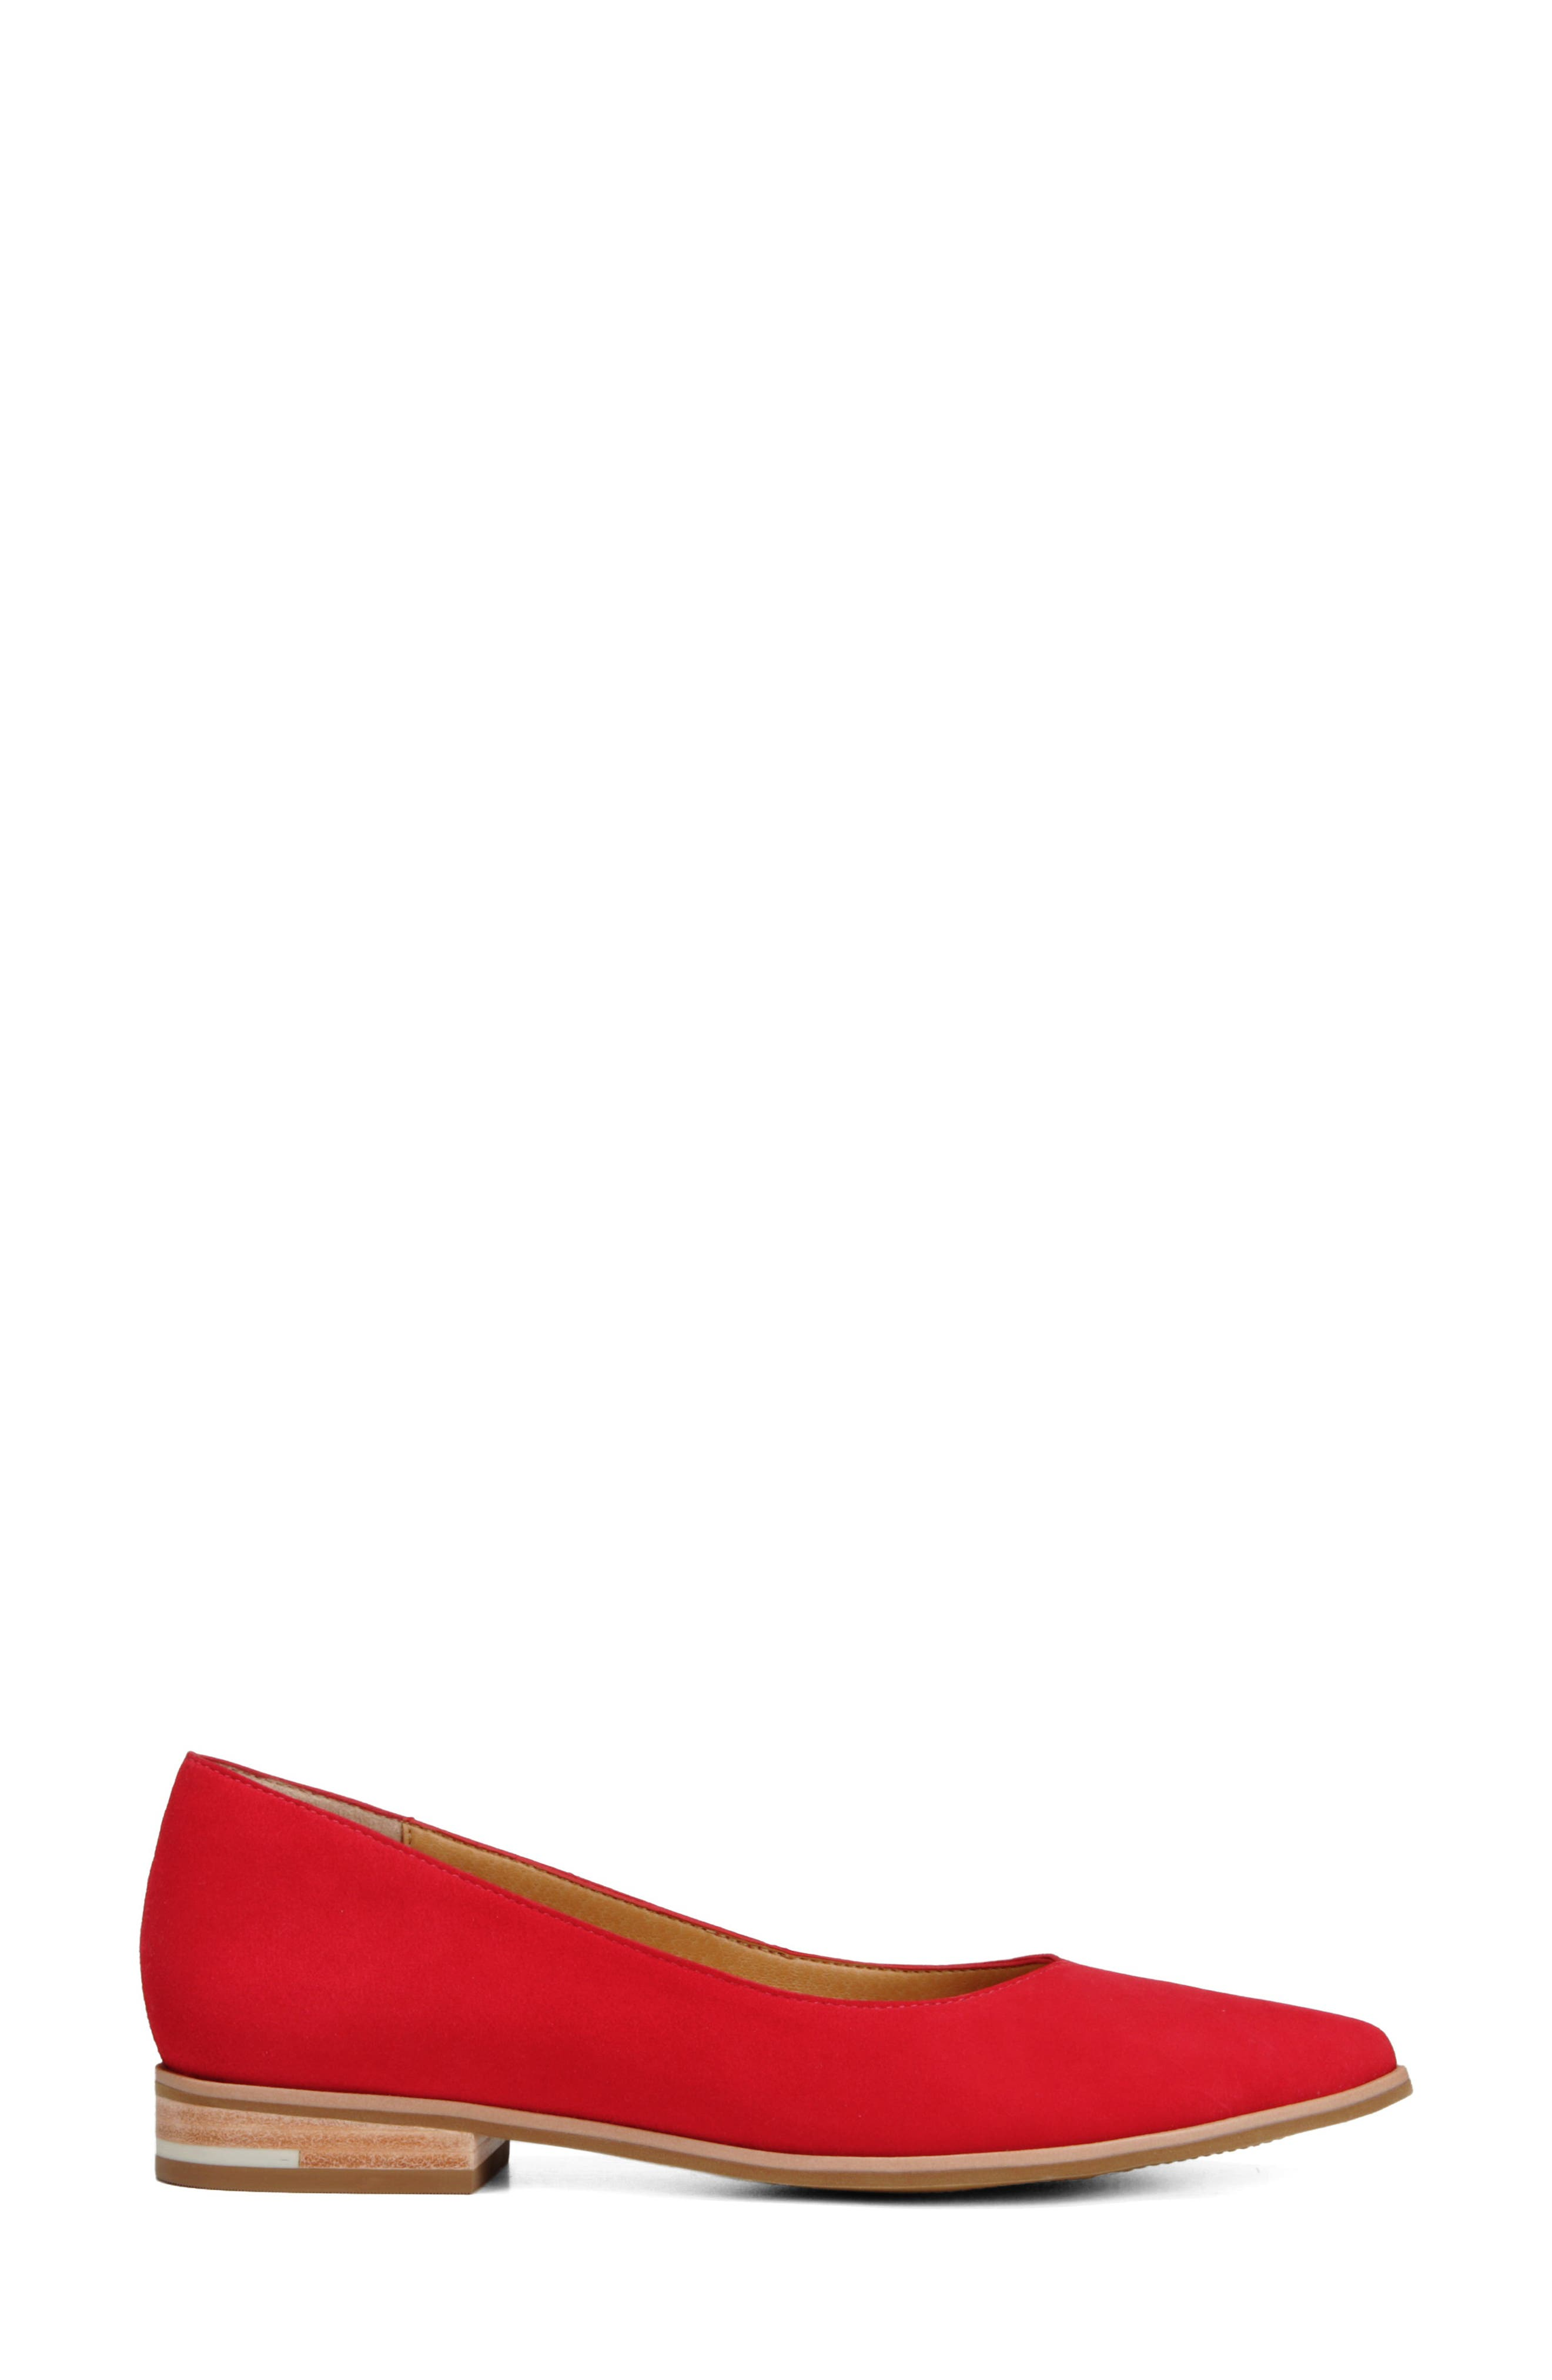 Dr. Scholls Flair Flat,                             Alternate thumbnail 3, color,                             RED LEATHER